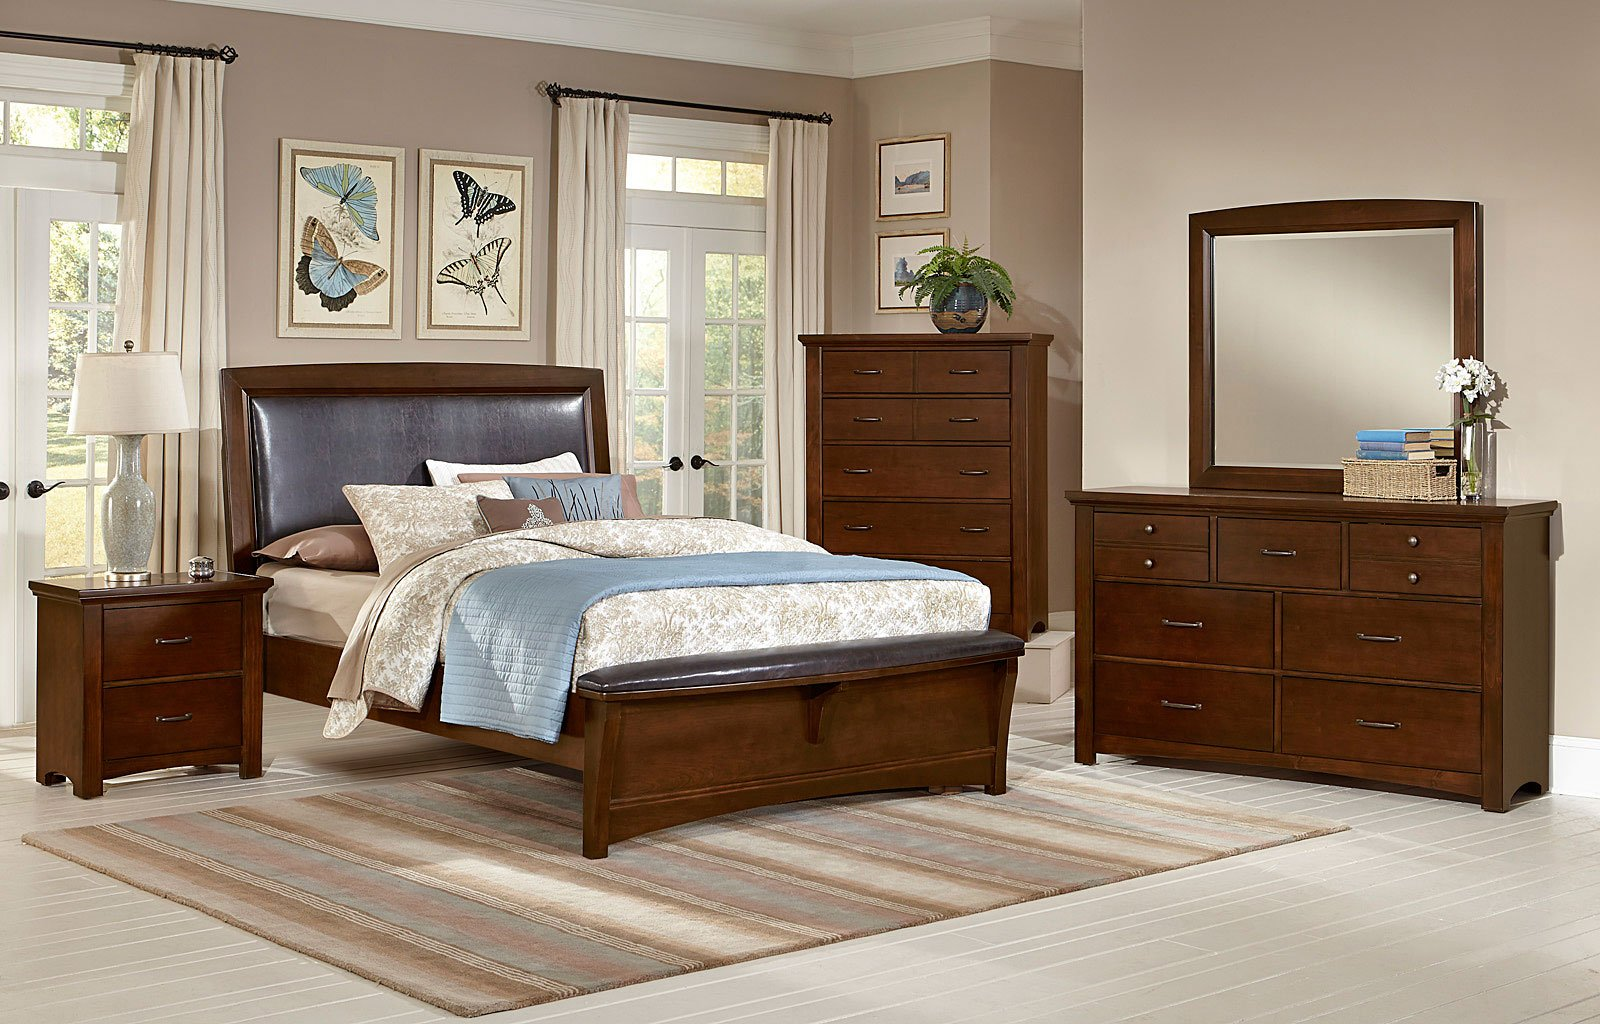 Transitions Upholstered Bedroom Set (Dark Cherry)